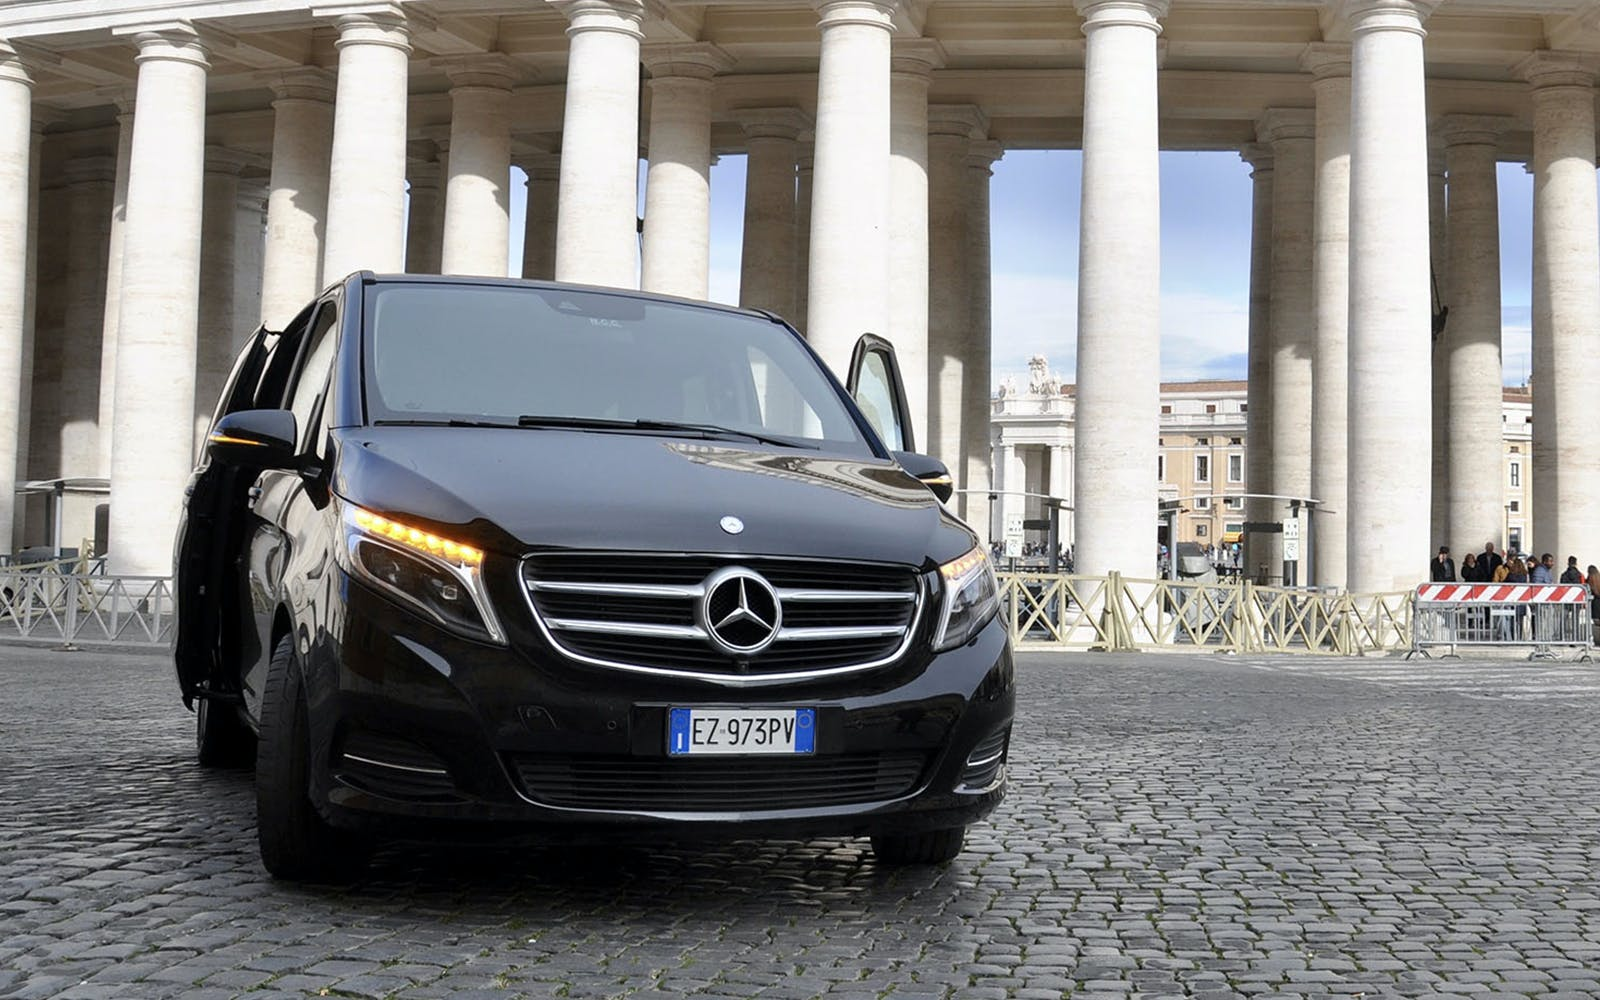 rome hotels to fiumicino airport shared shuttle transfer-1